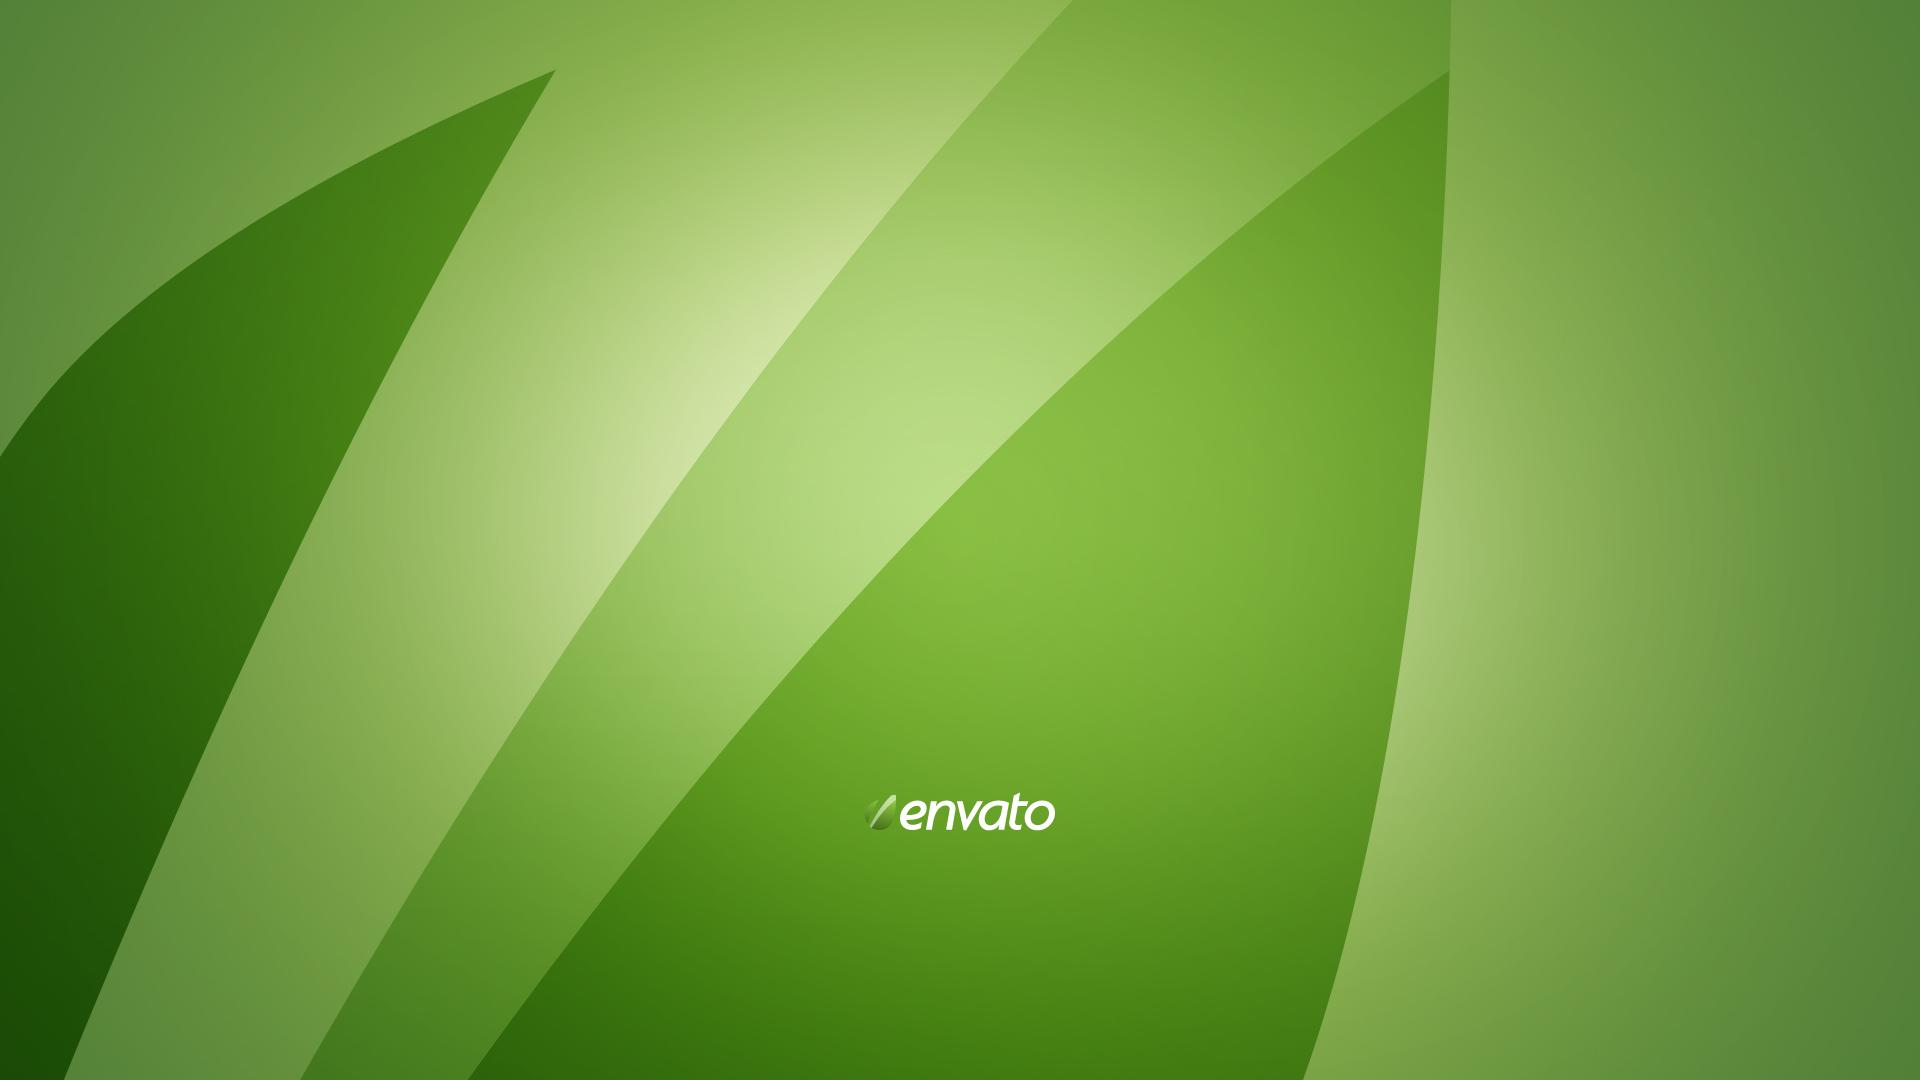 Envato design green backgrounds